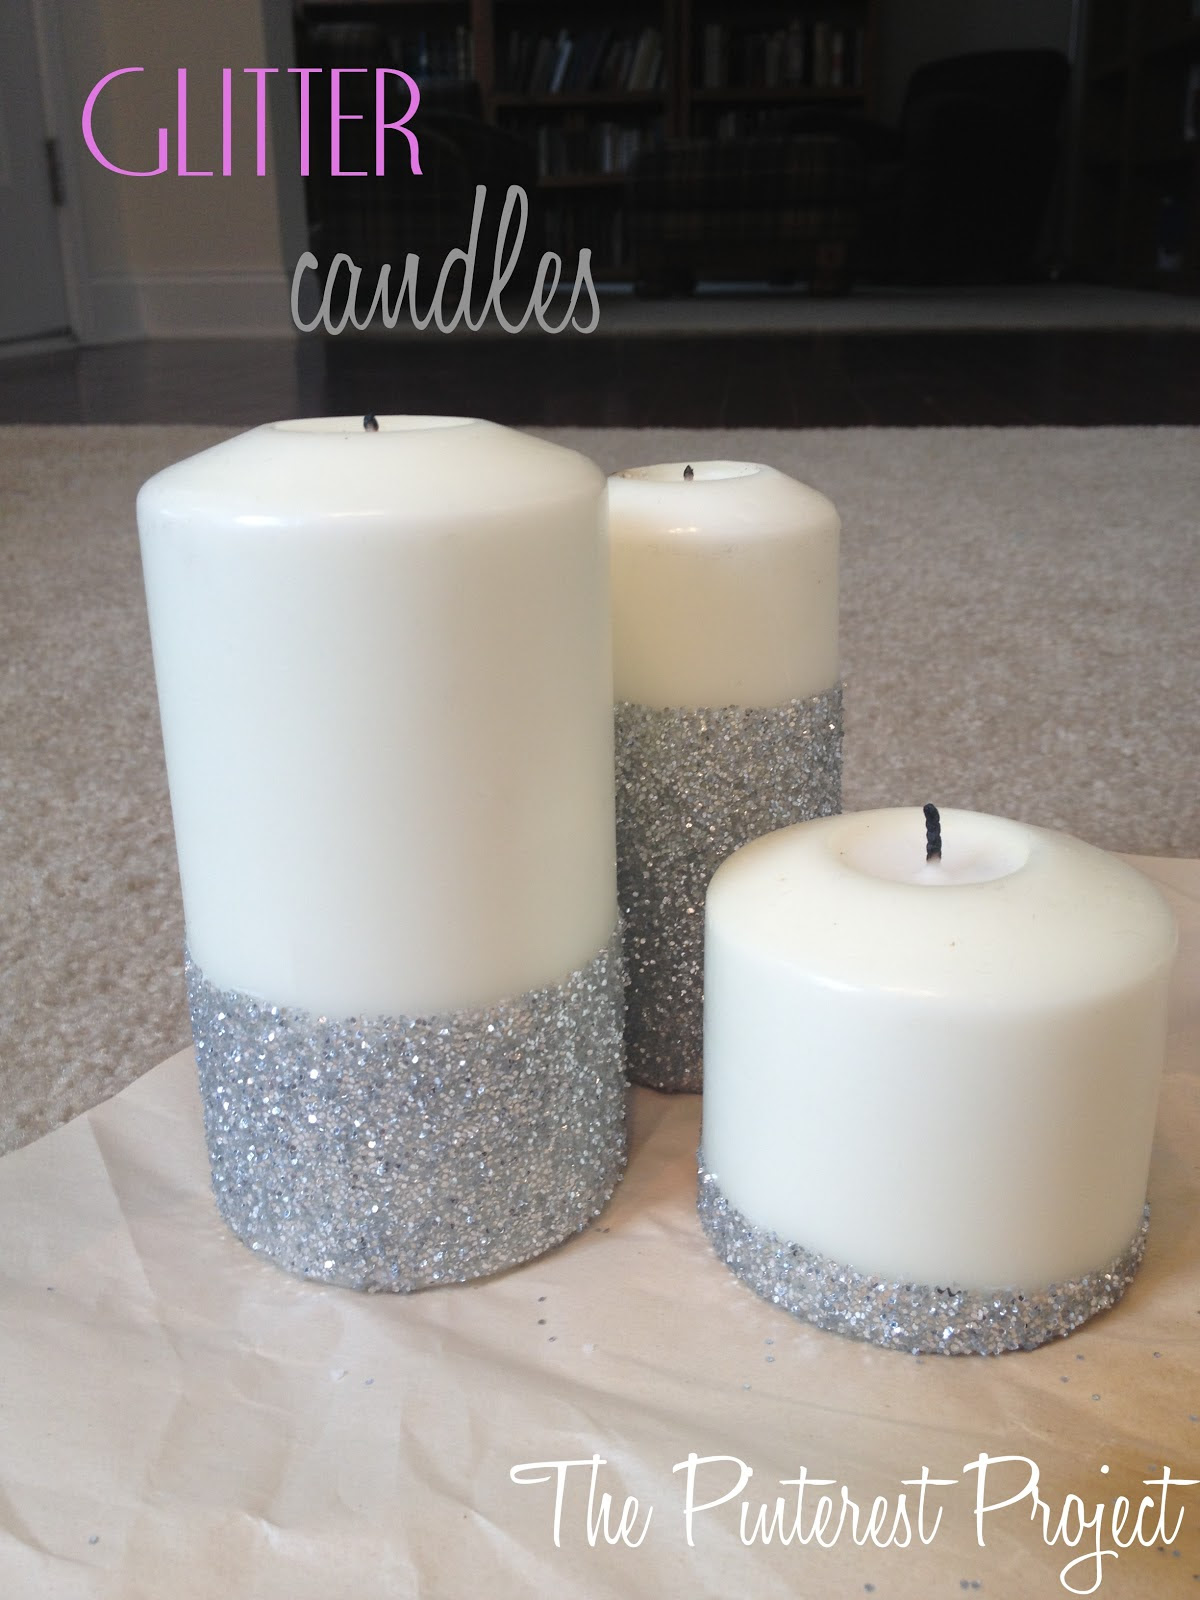 Glitter Candles | The Pinterest Project